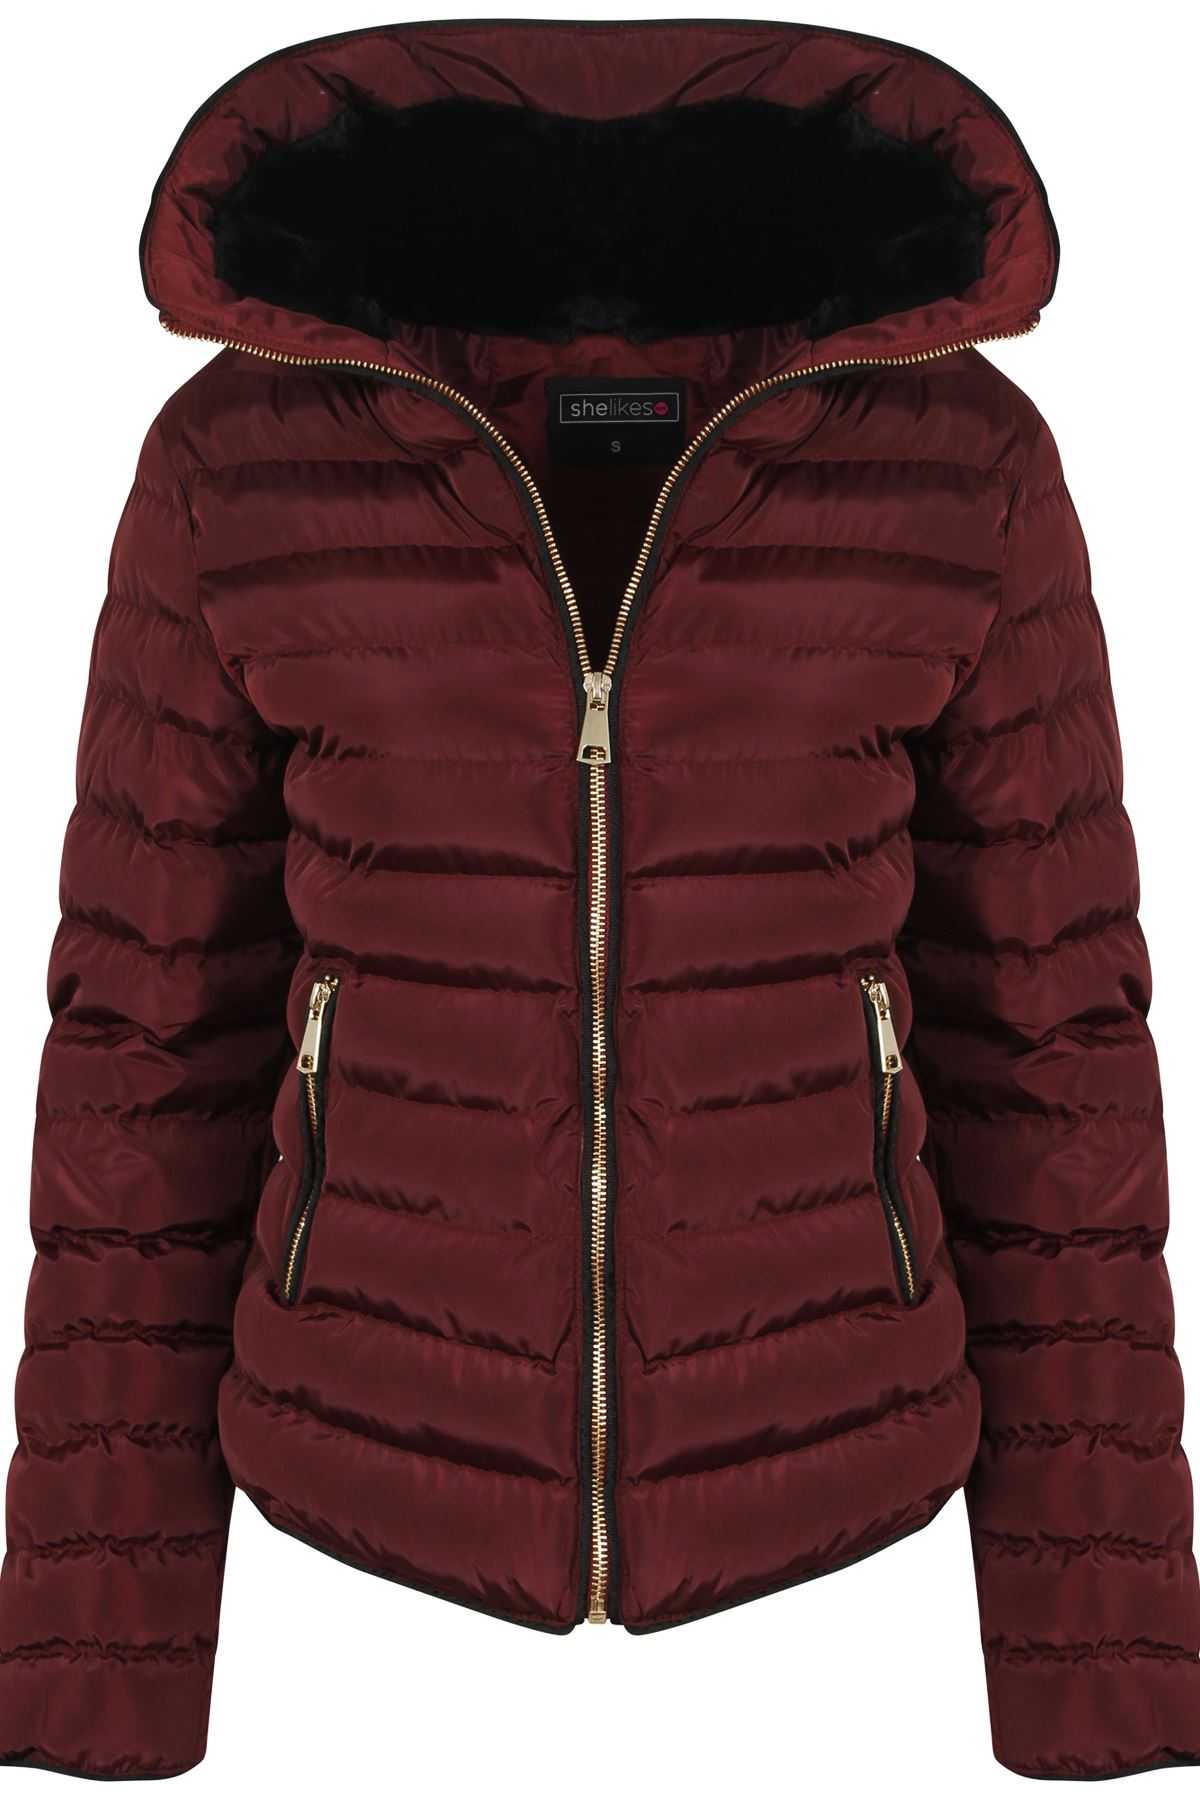 Womens Wine With Thick Coat Padded Jacket Warm Zip Quilted Black ...